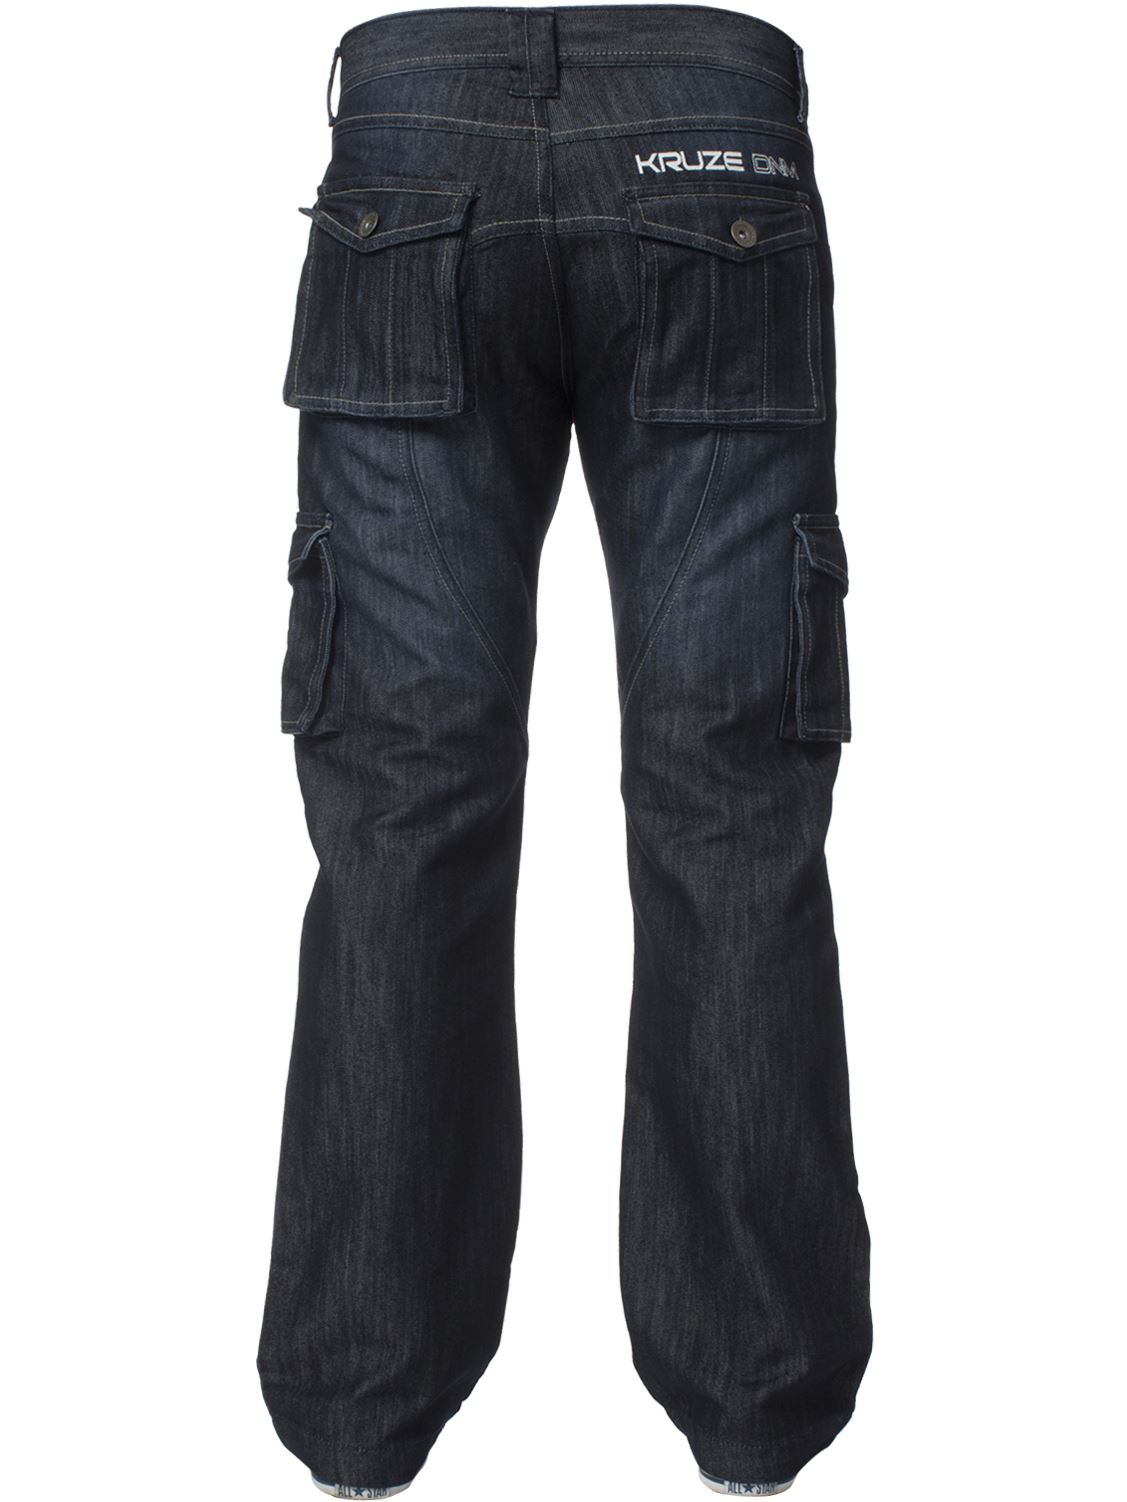 Mens-Cargo-Jeans-Combat-Trousers-Heavy-Duty-Work-Casual-Big-Tall-Denim-Pants thumbnail 69